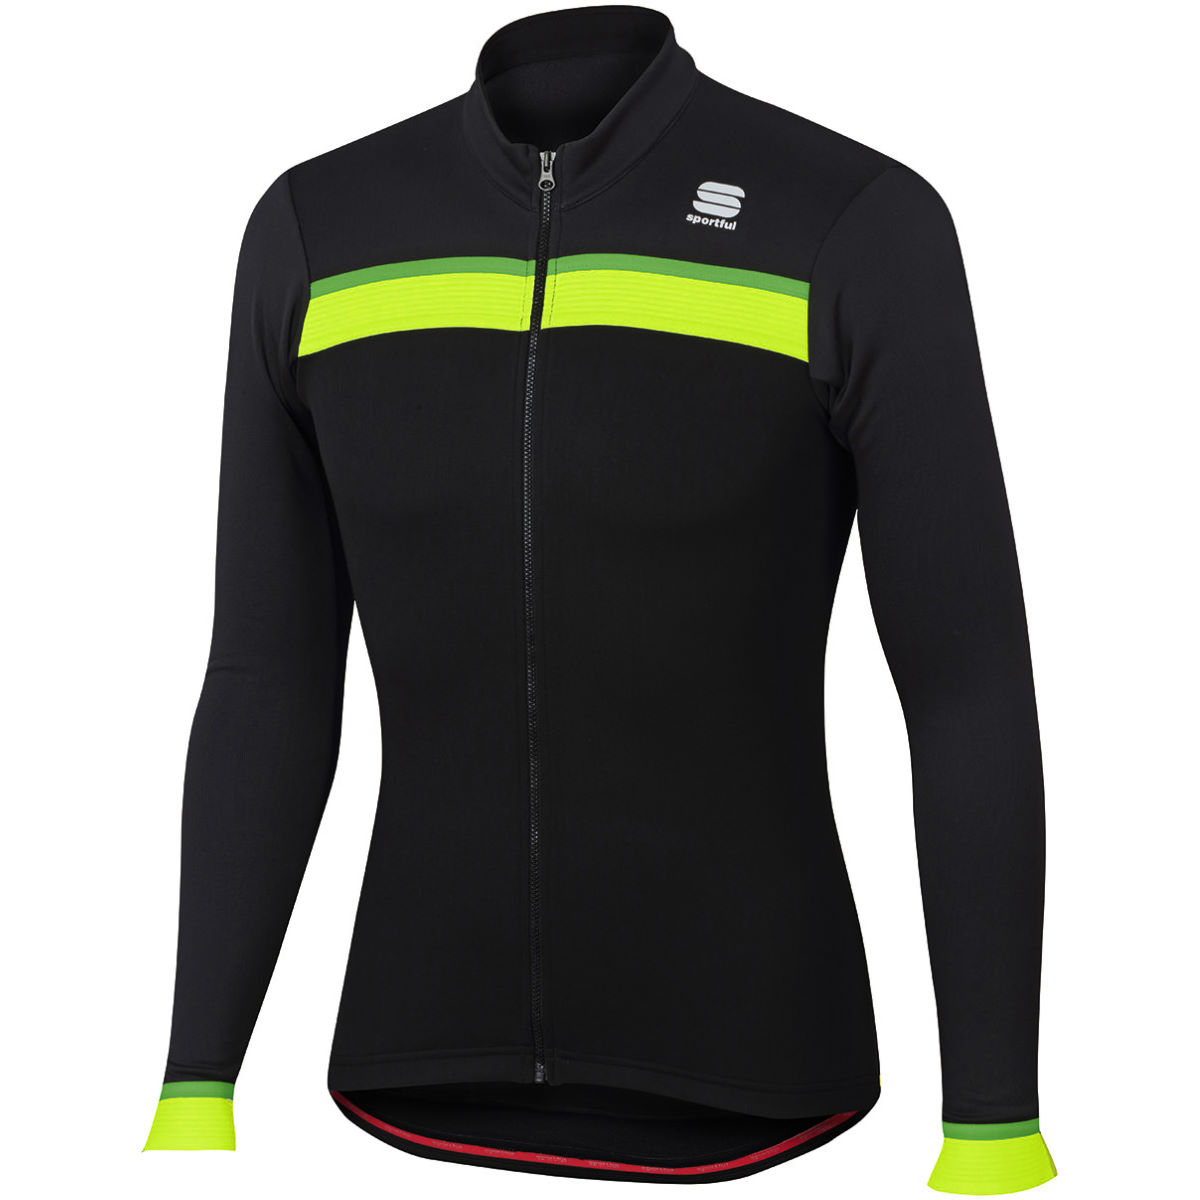 Maillot Sportful Pista Thermal (manches longues) - M Noir/Anthracite